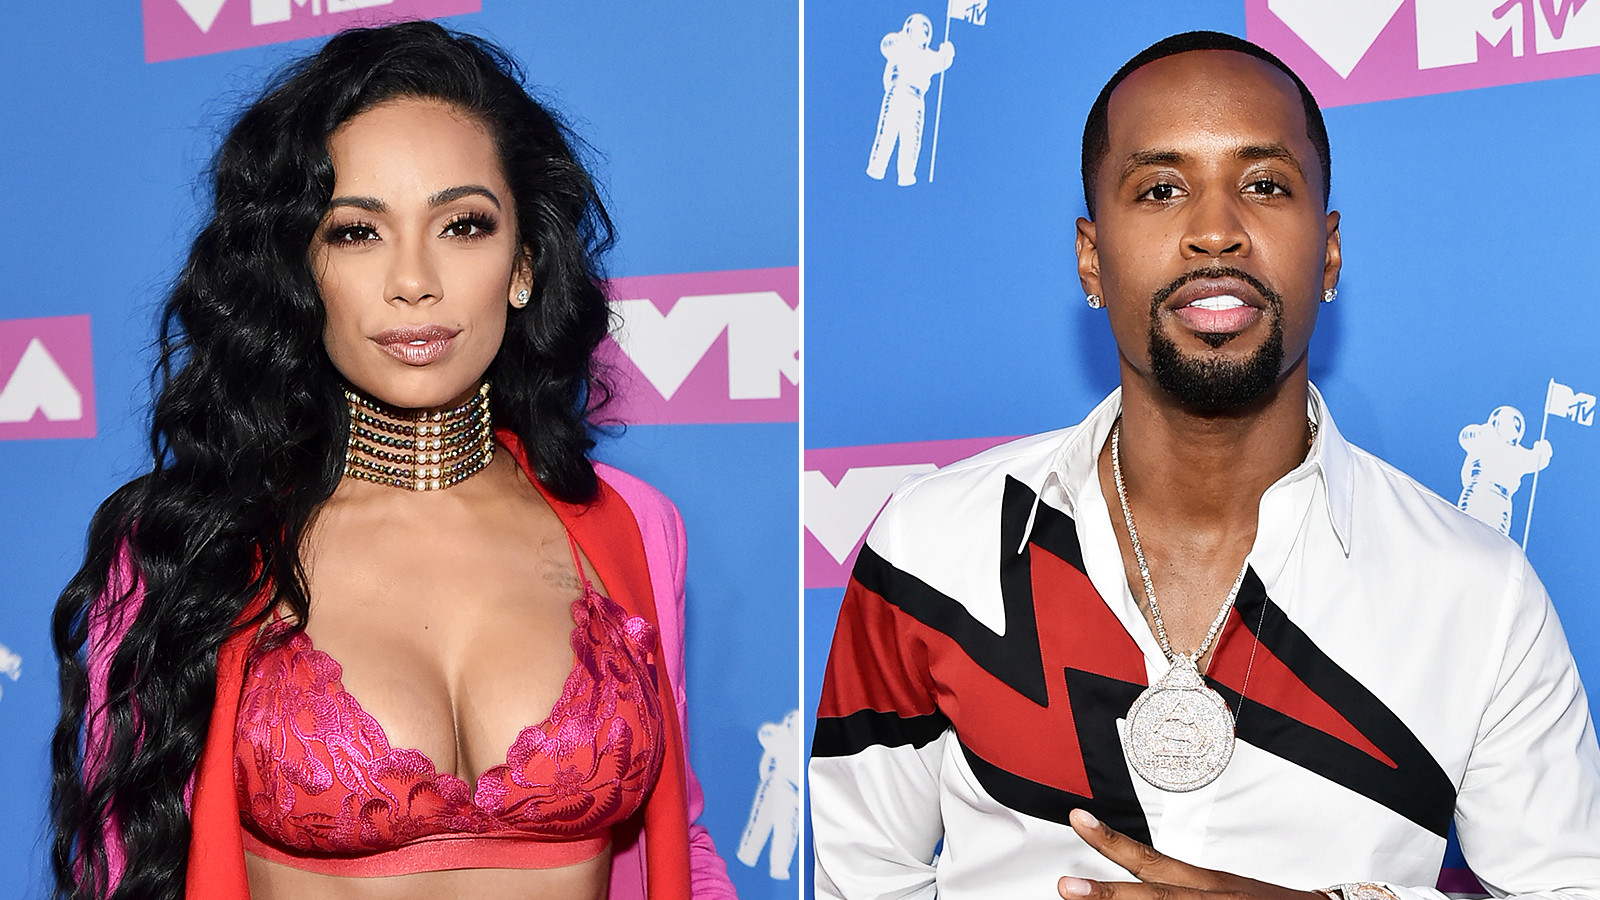 Erica Mena Shares The Most Emotional Video - Her And Safaree's First Dance To Celebrate Bringing Their Baby Into the World